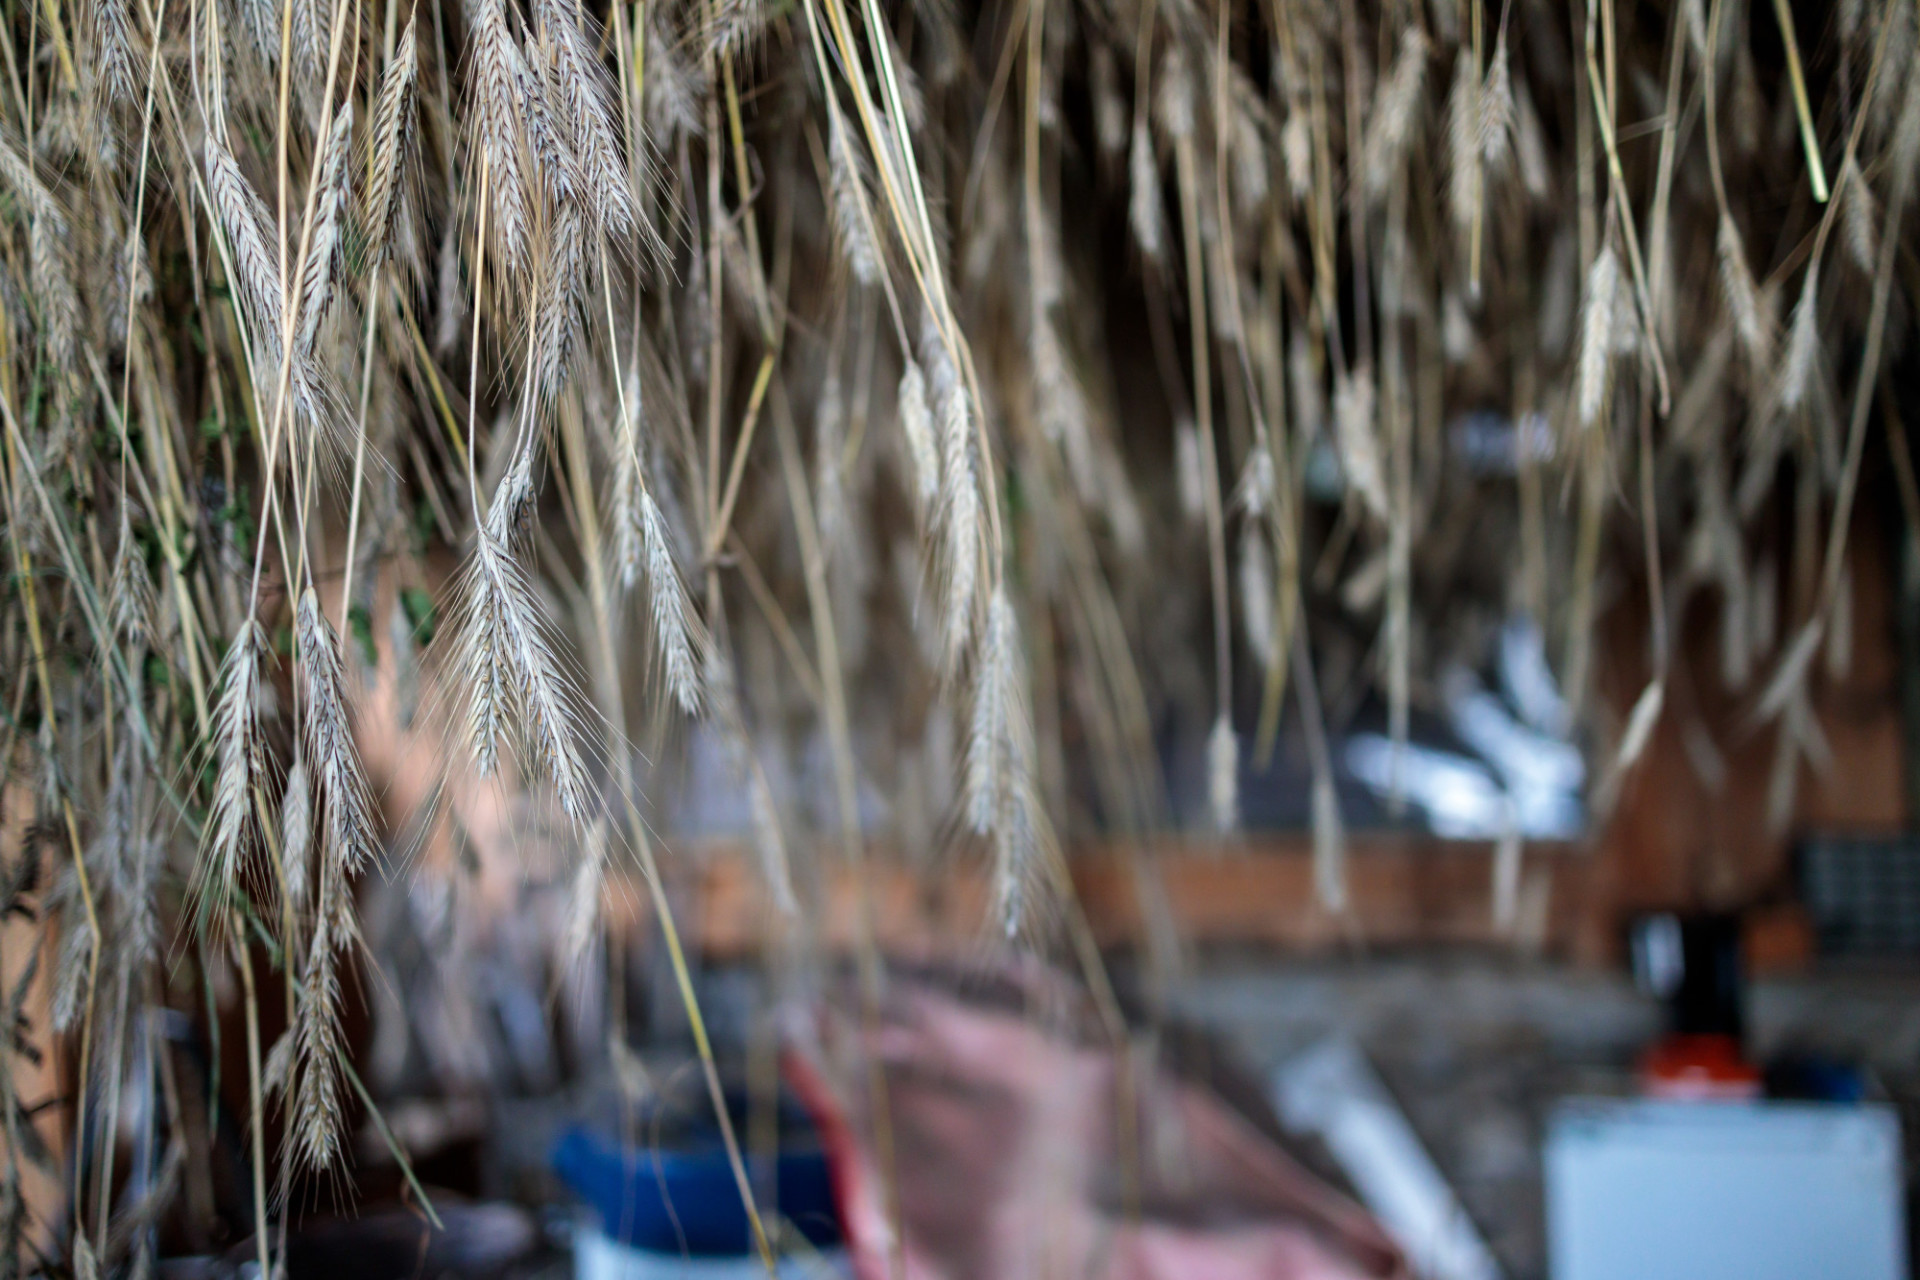 Wheat hung up to dry